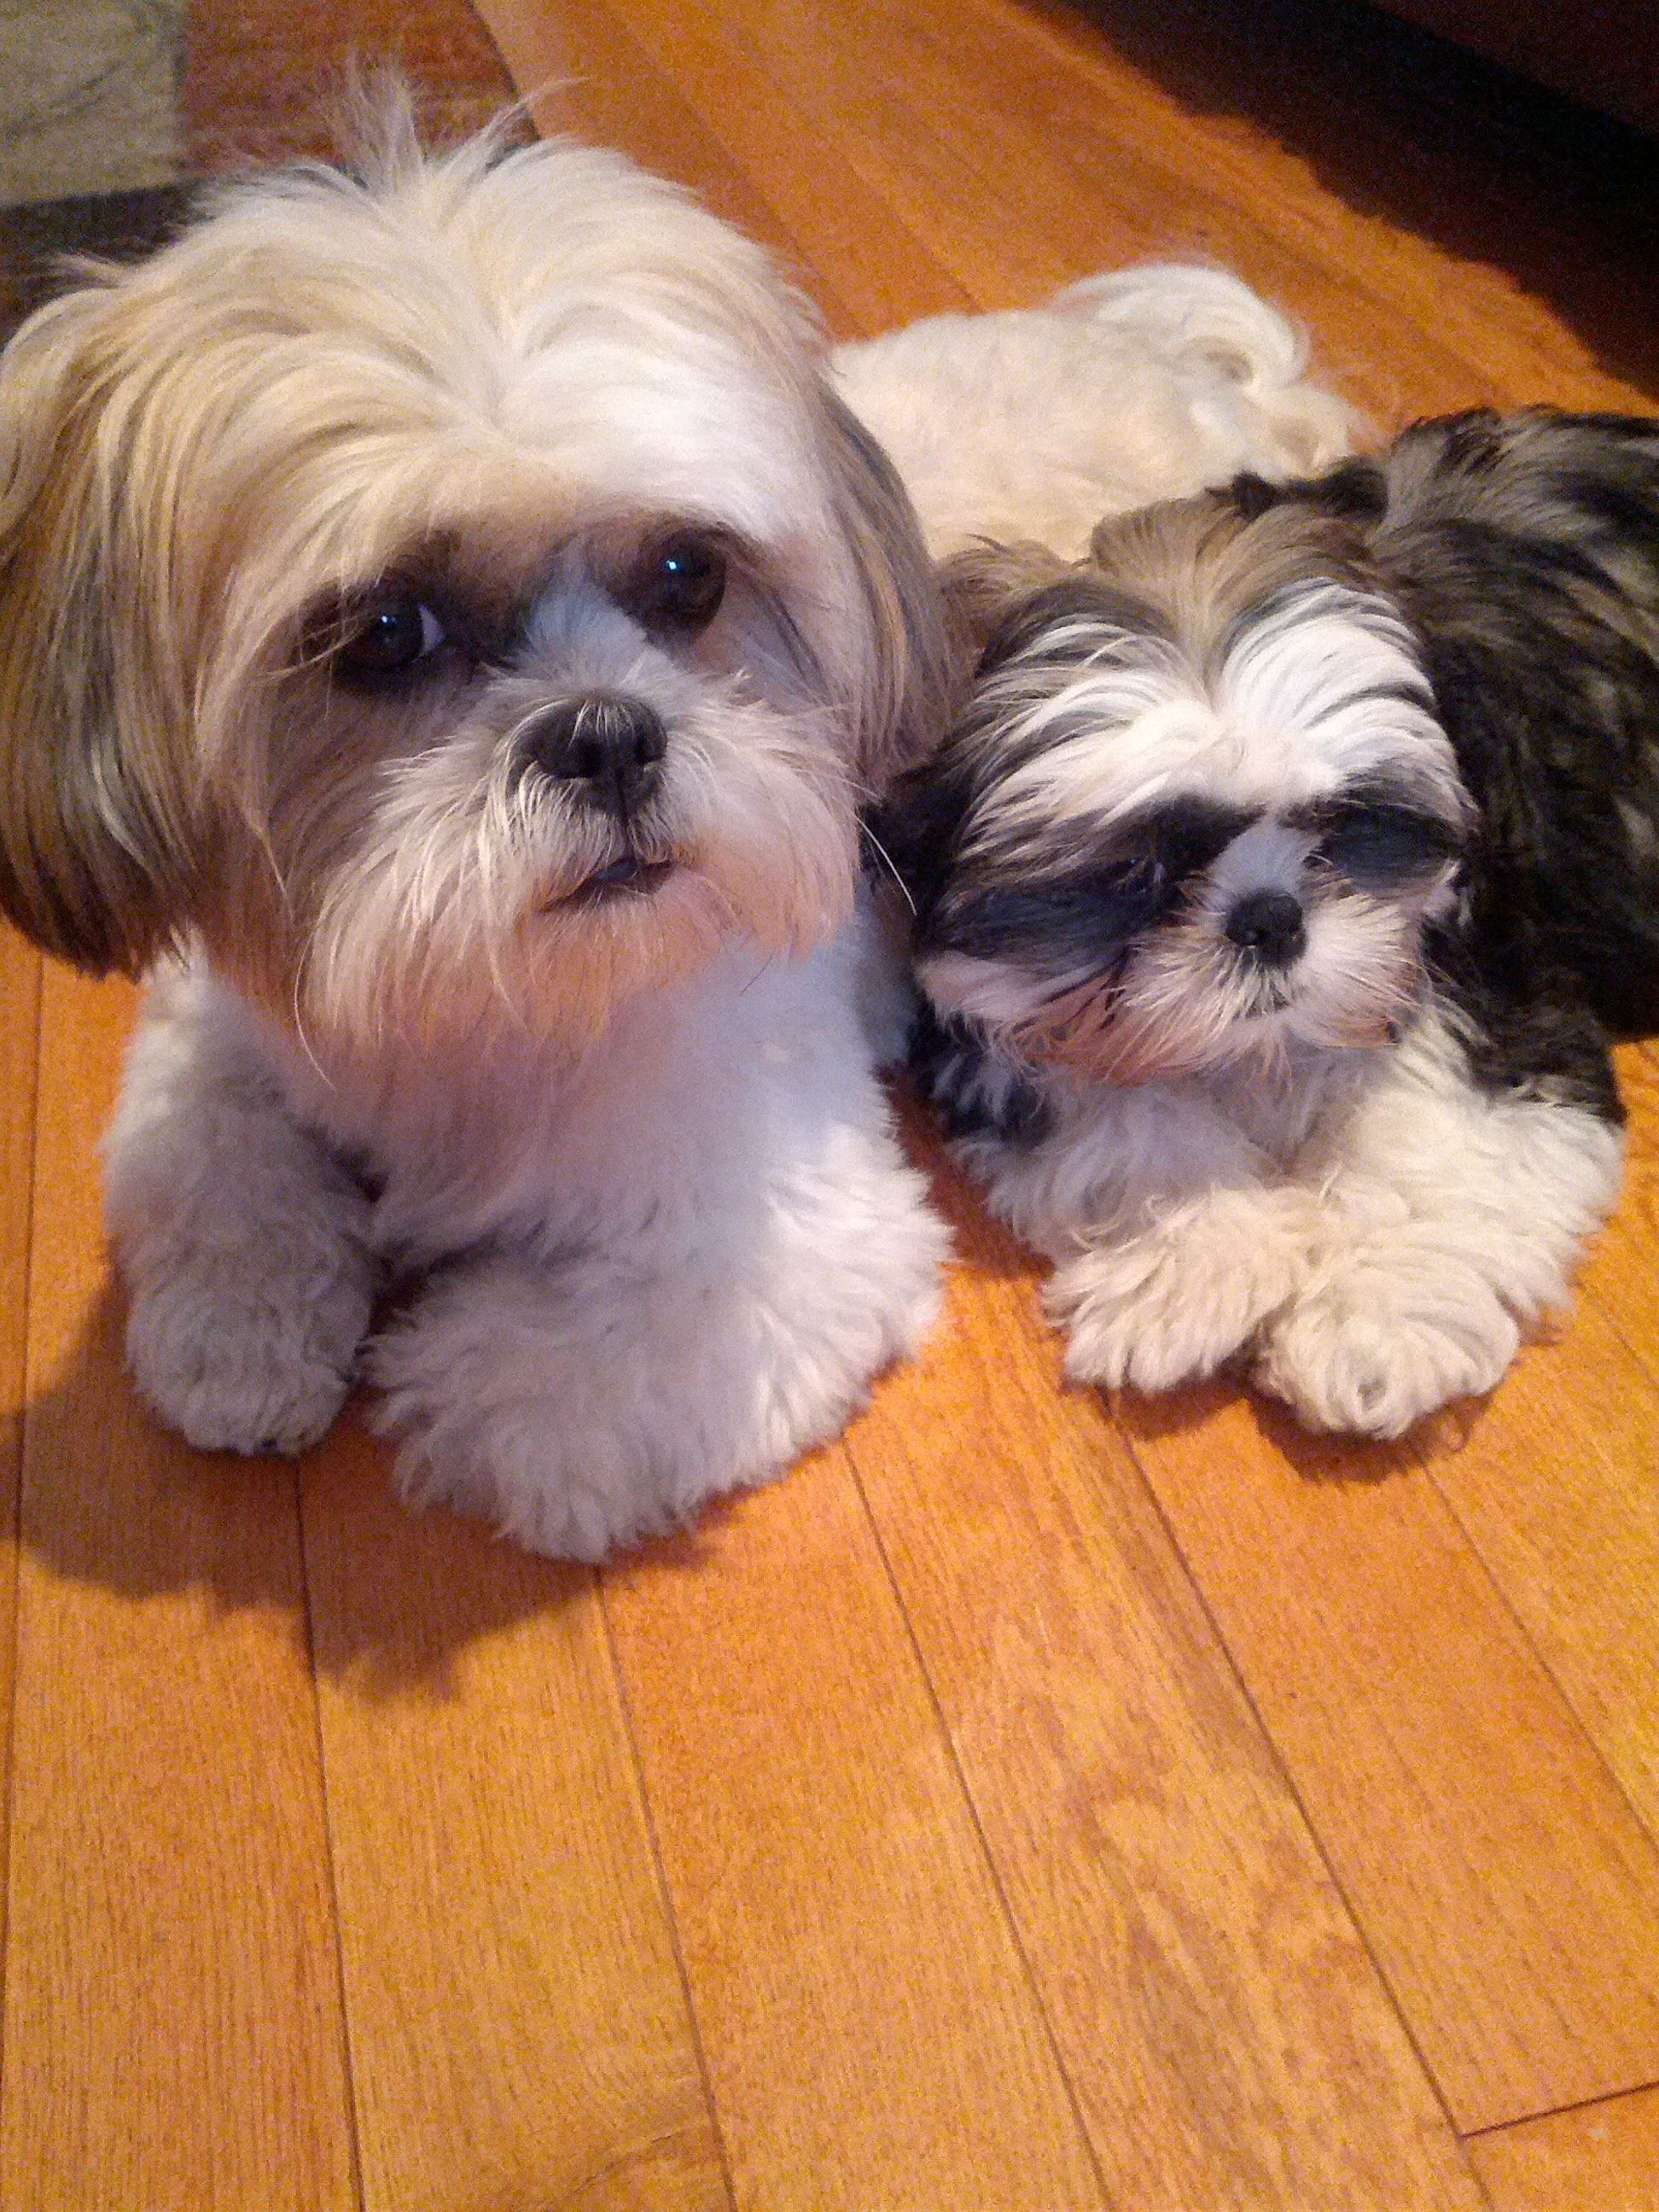 Look Like Gracie And Chewie Shihtzu Shih Tzu Dog Shih Tzu